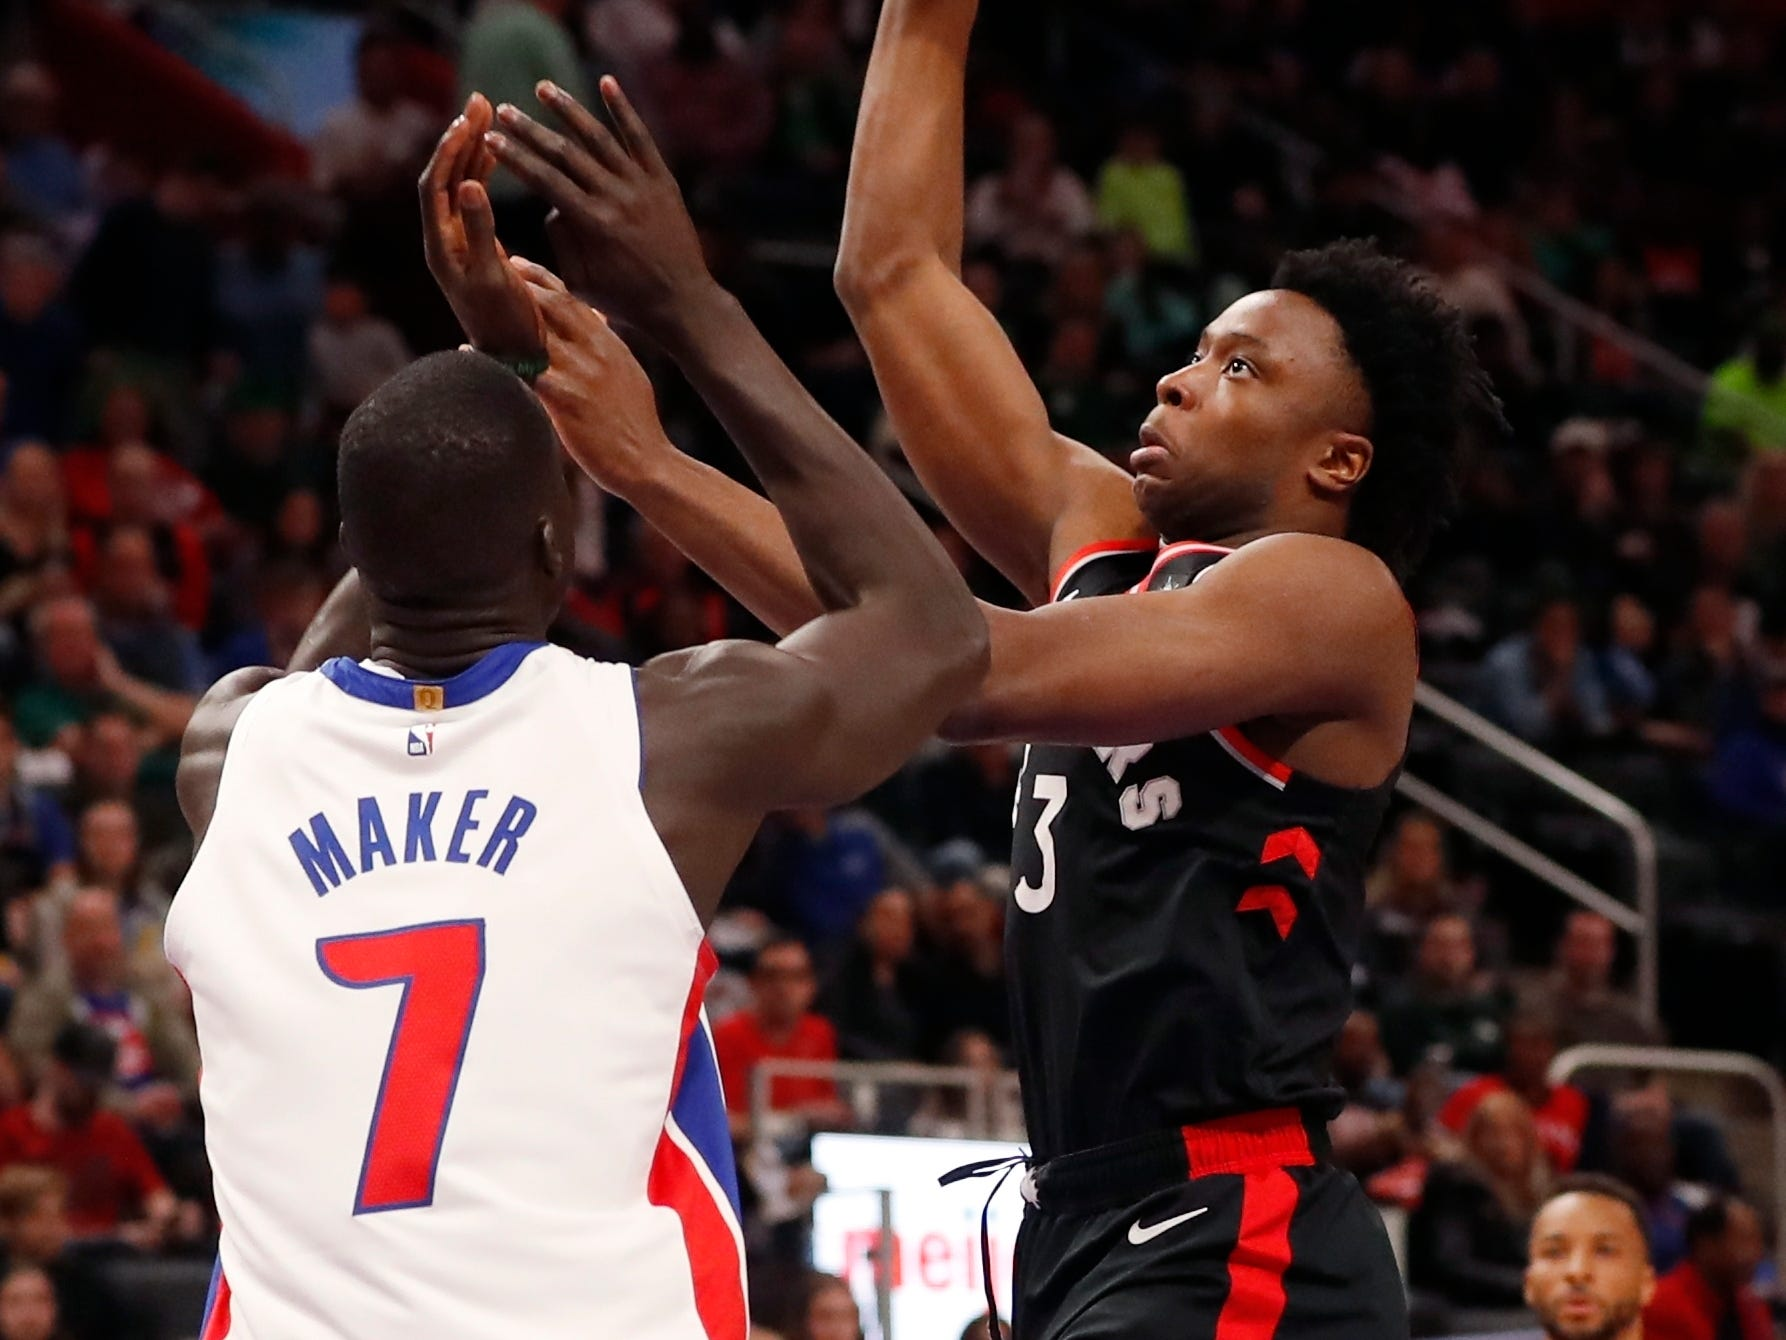 Toronto Raptors forward OG Anunoby shoots over the defense of Detroit Pistons forward Thon Maker during the first half Sunday, March 17, 2019, in Detroit.